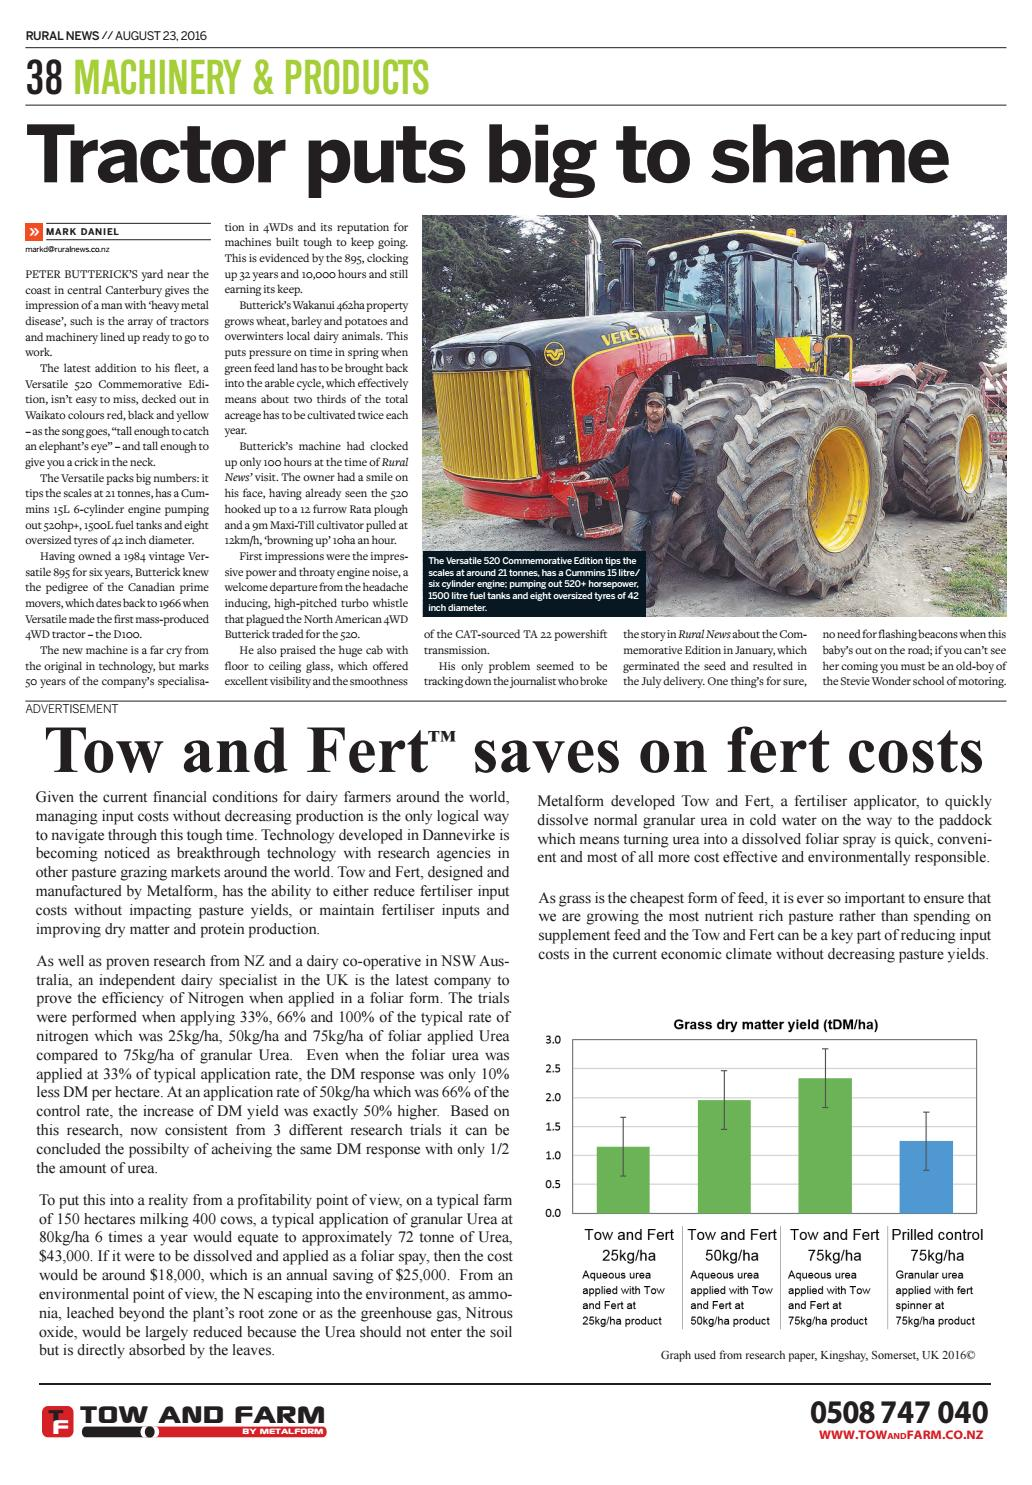 Rural News 23 August 2016 by Rural News Group - issuu